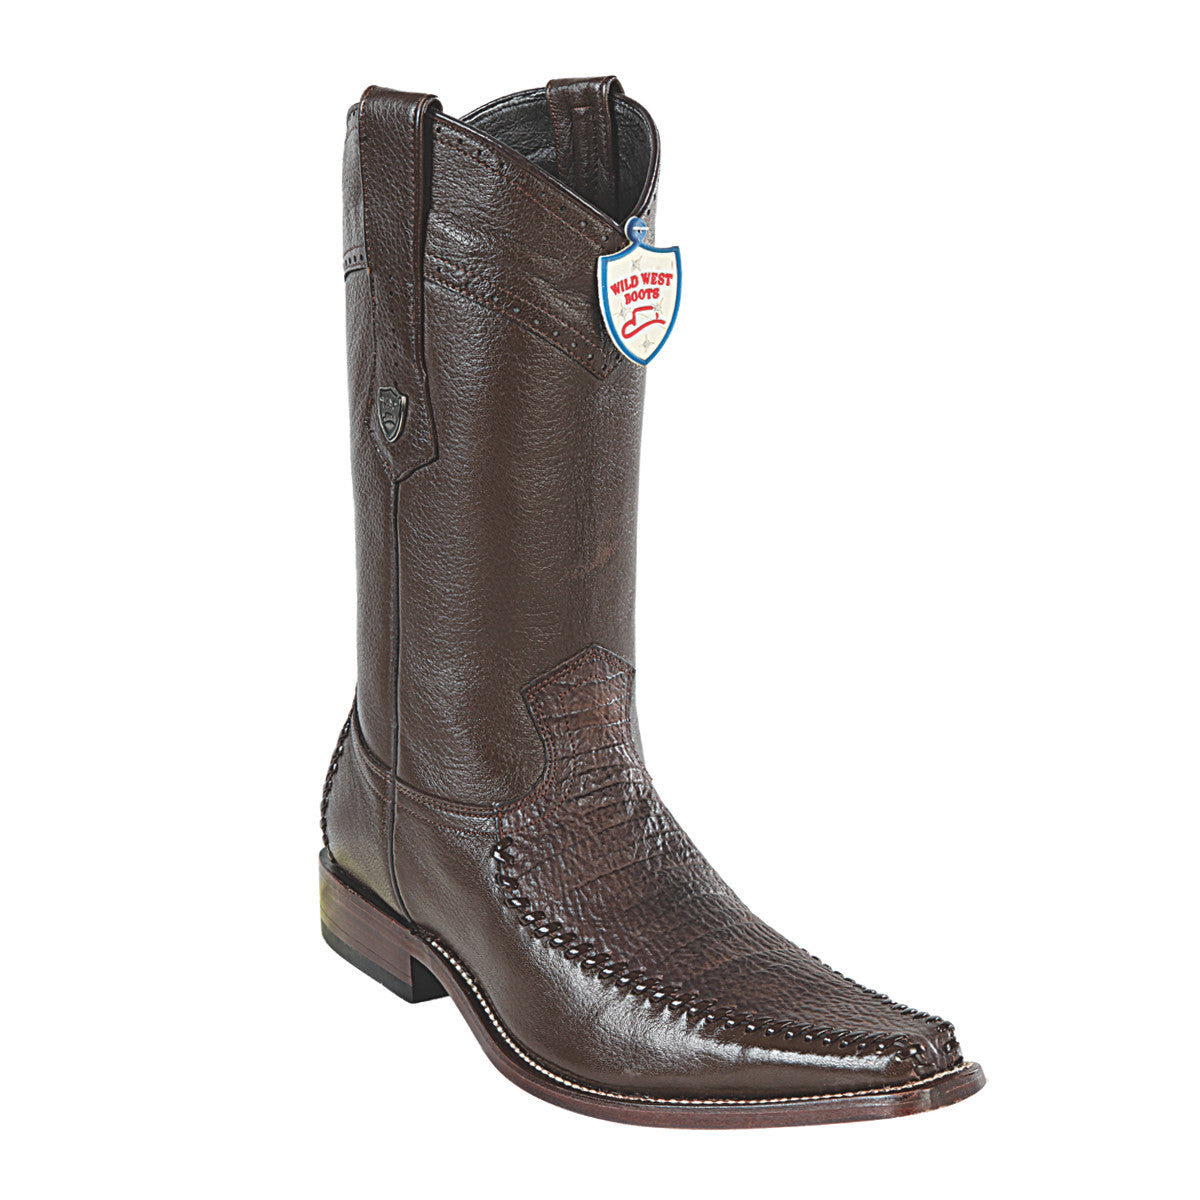 Wild West Boots Square Toe Shark/Deer